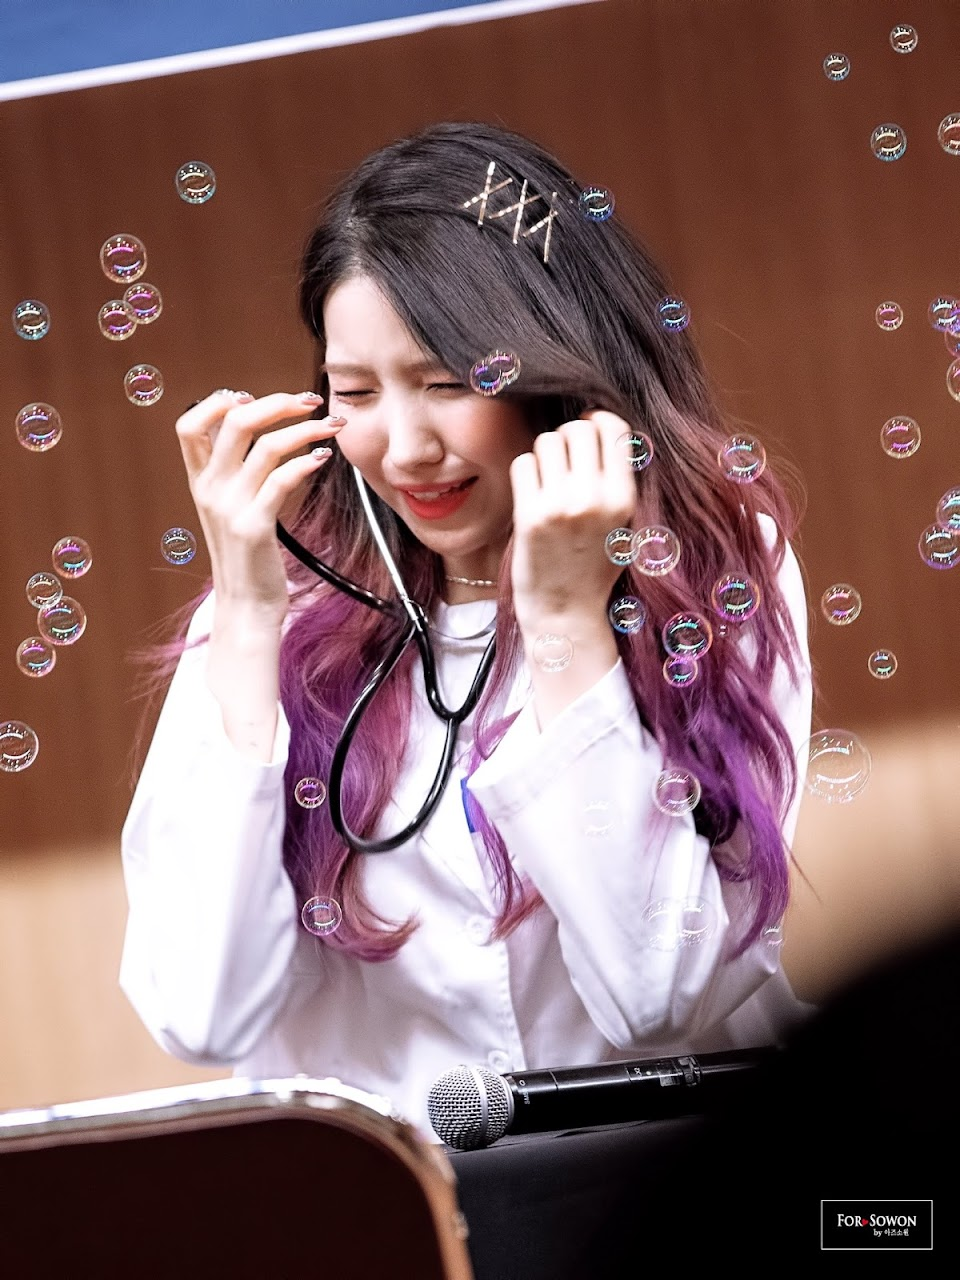 sowon bubble 2